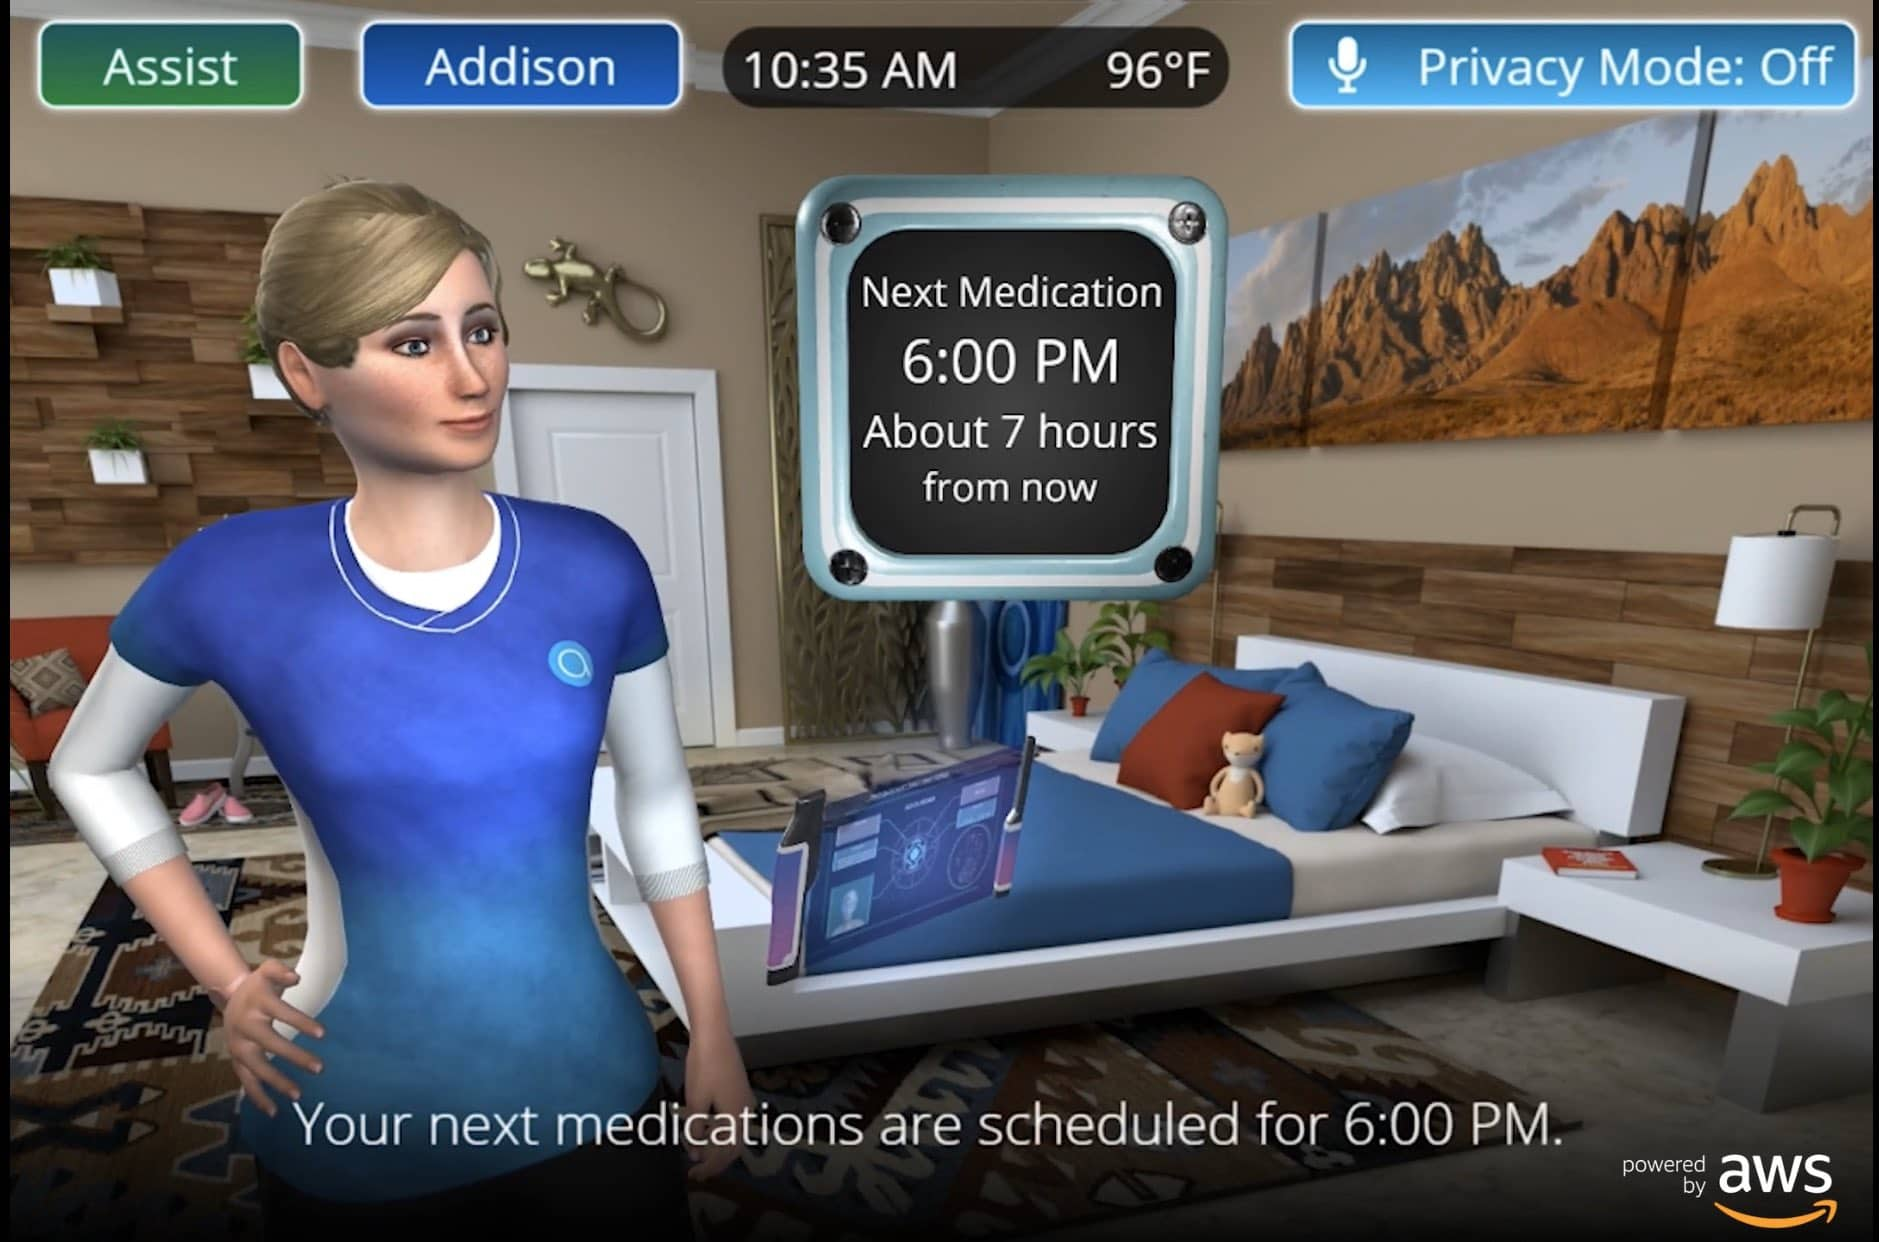 Addison with Intel RealSense Camera and med reminders